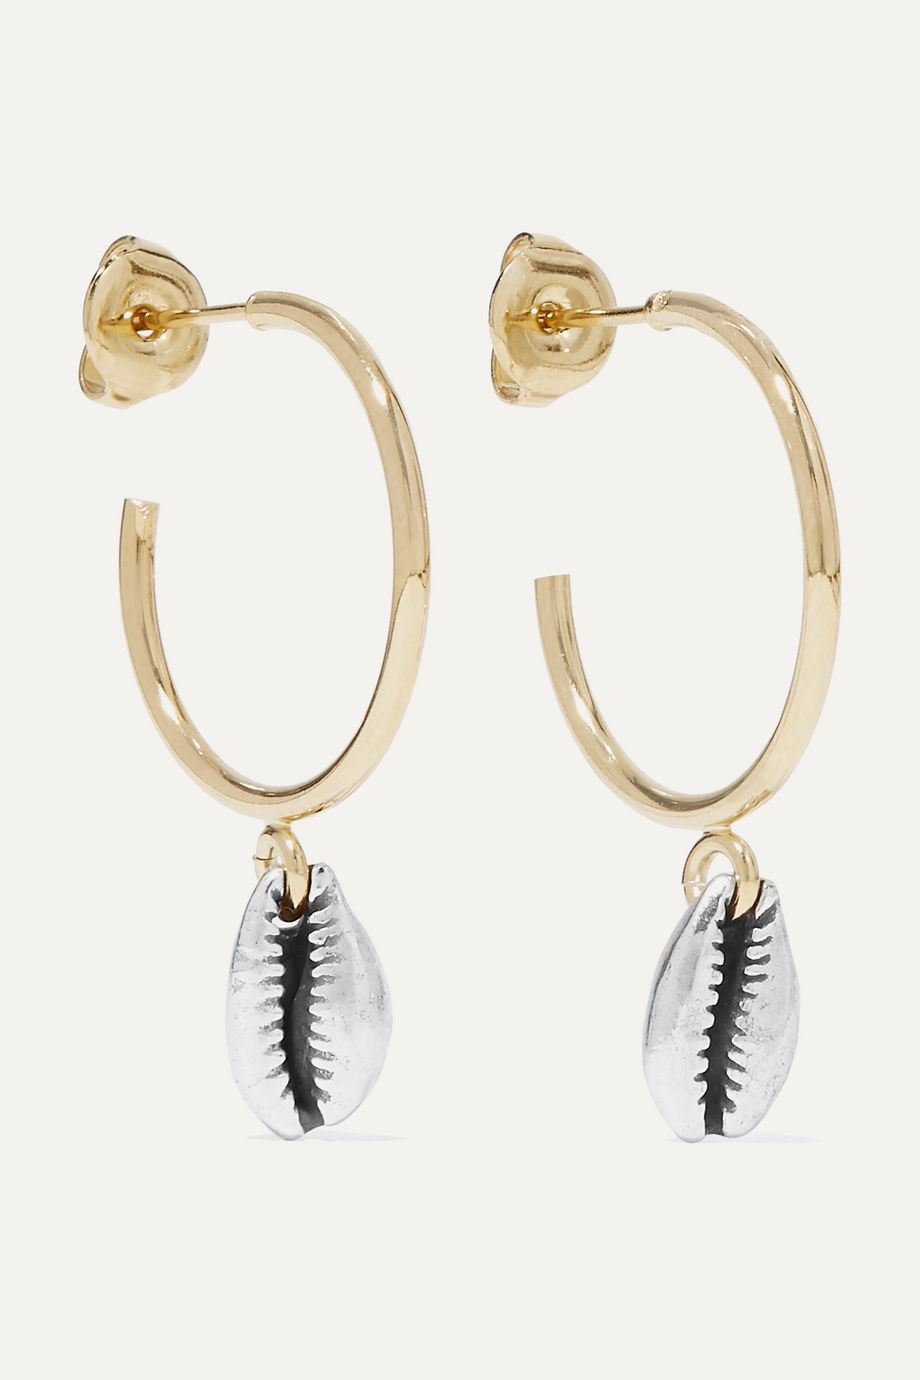 Isabel Marant Amer gold and silver-tone hoop earrings